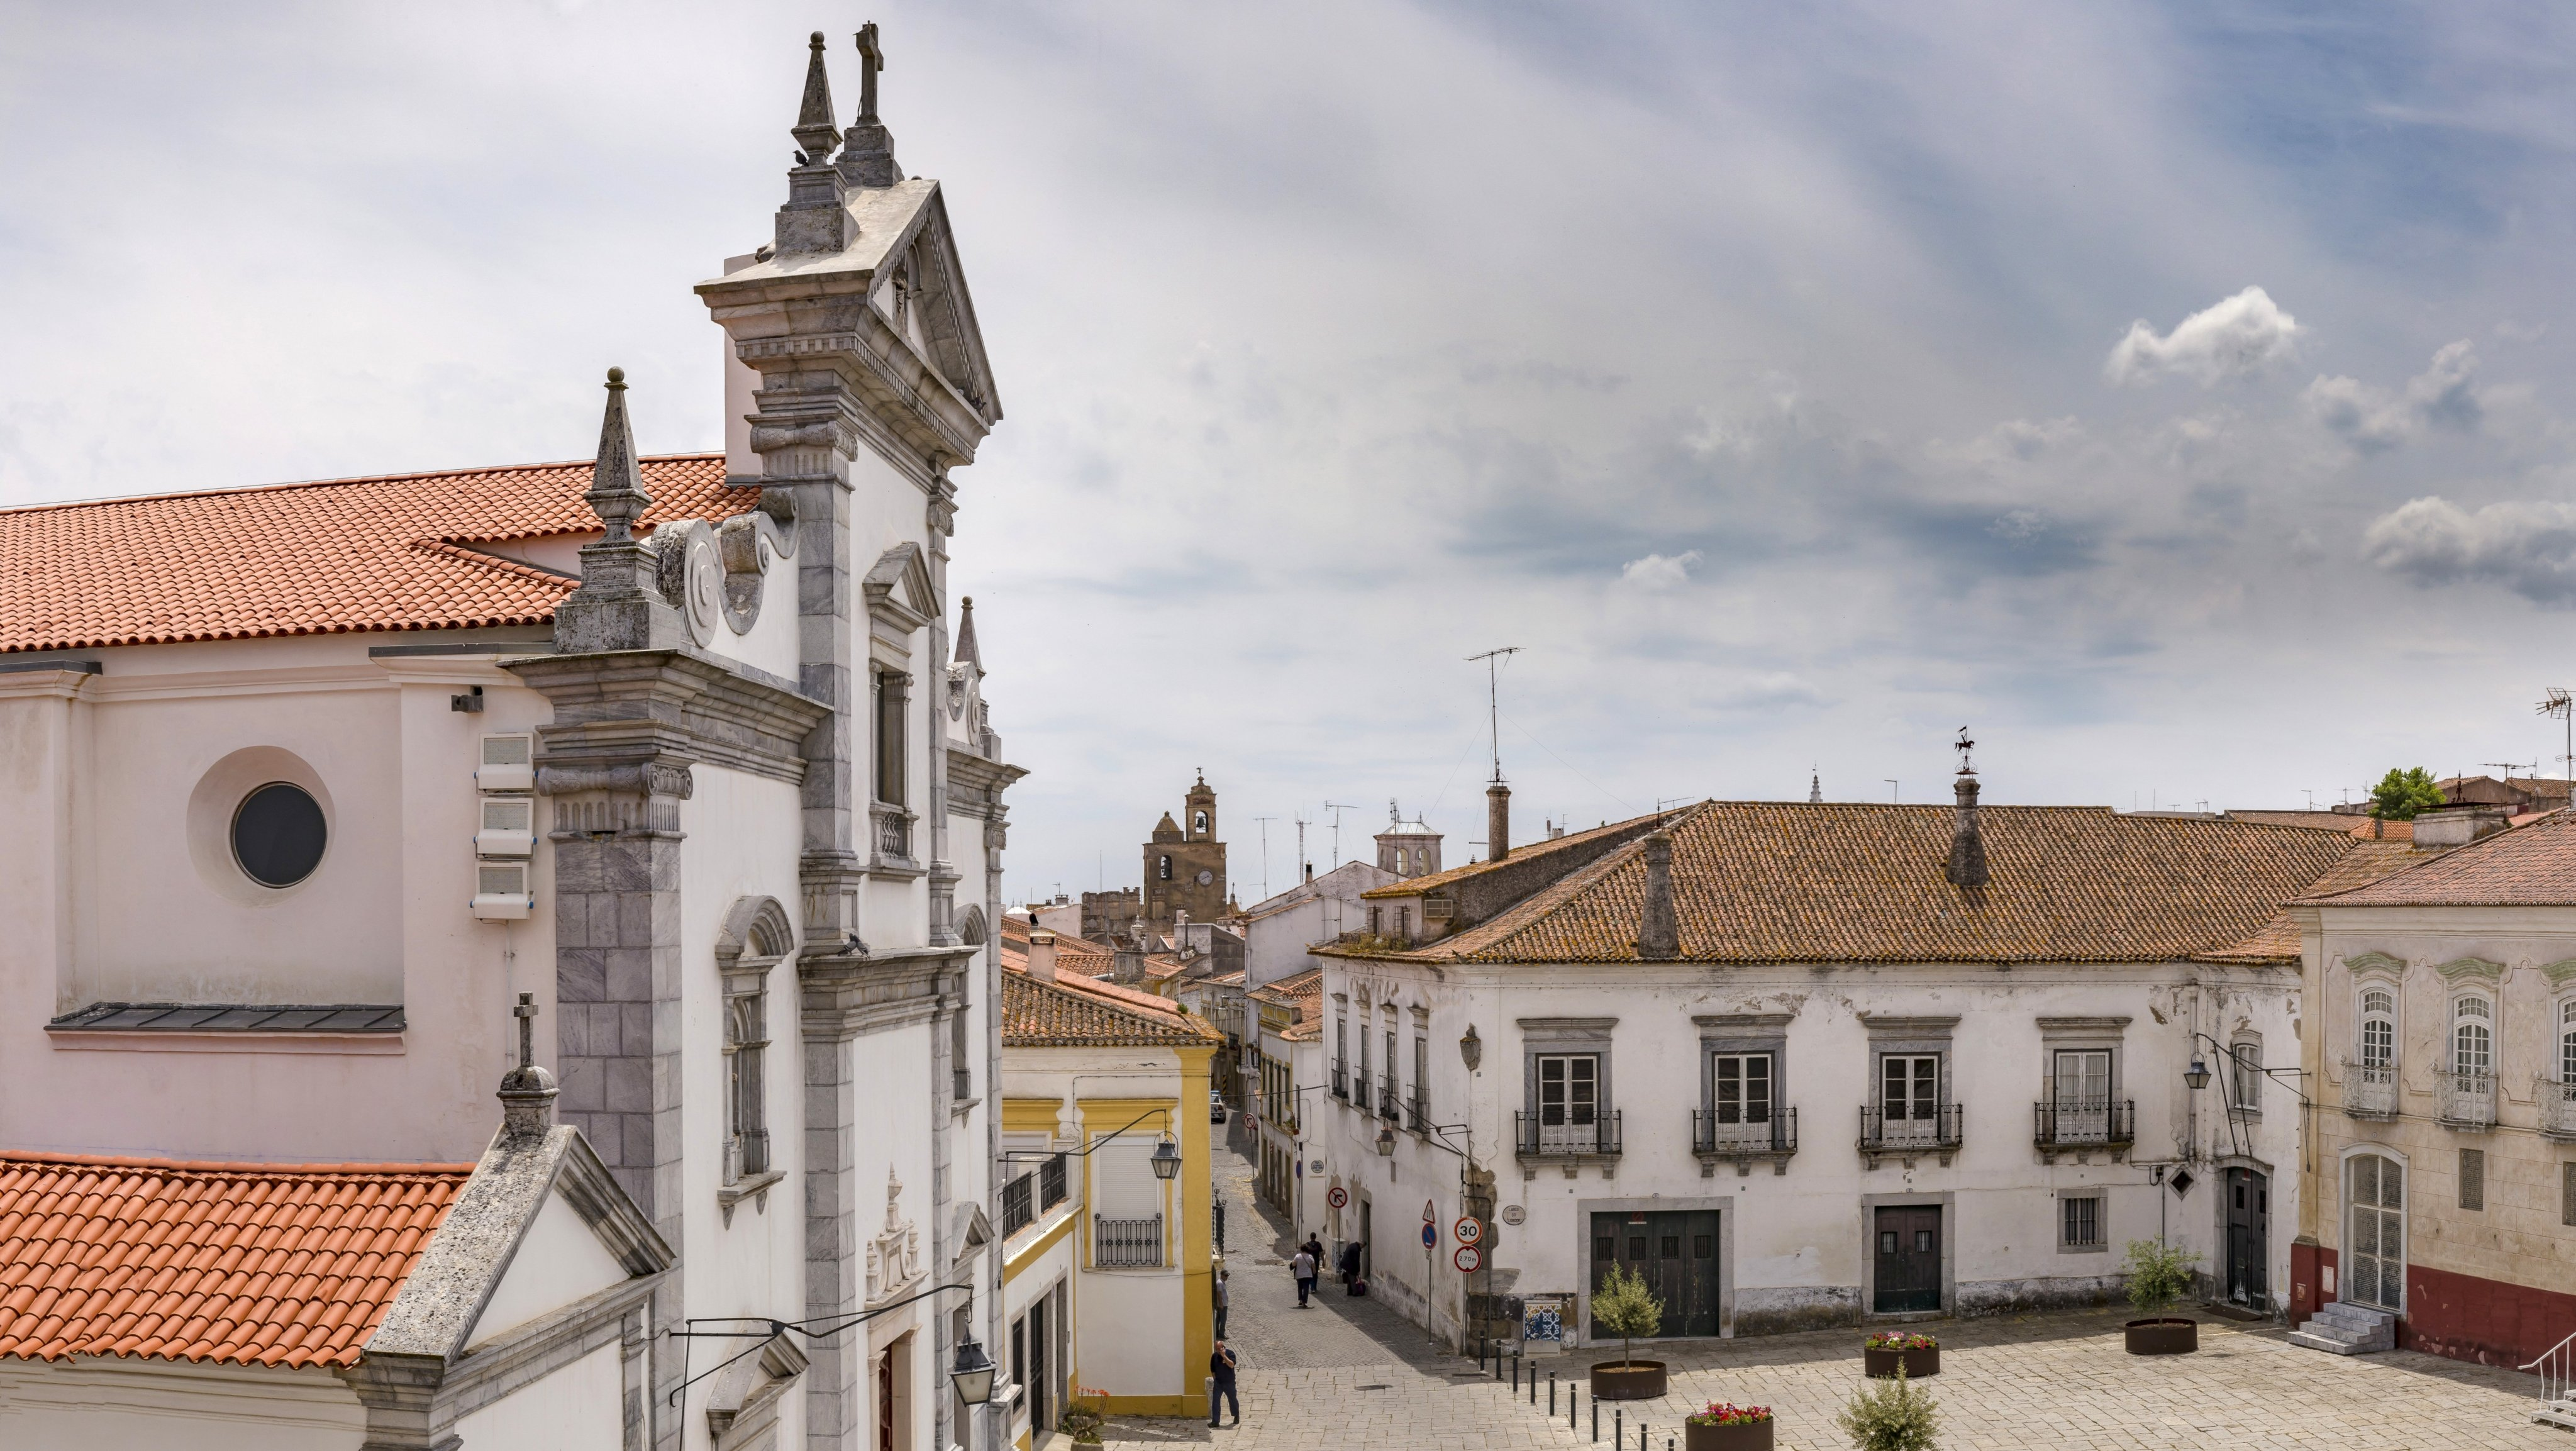 The main square with the Se Catedral de Beja.